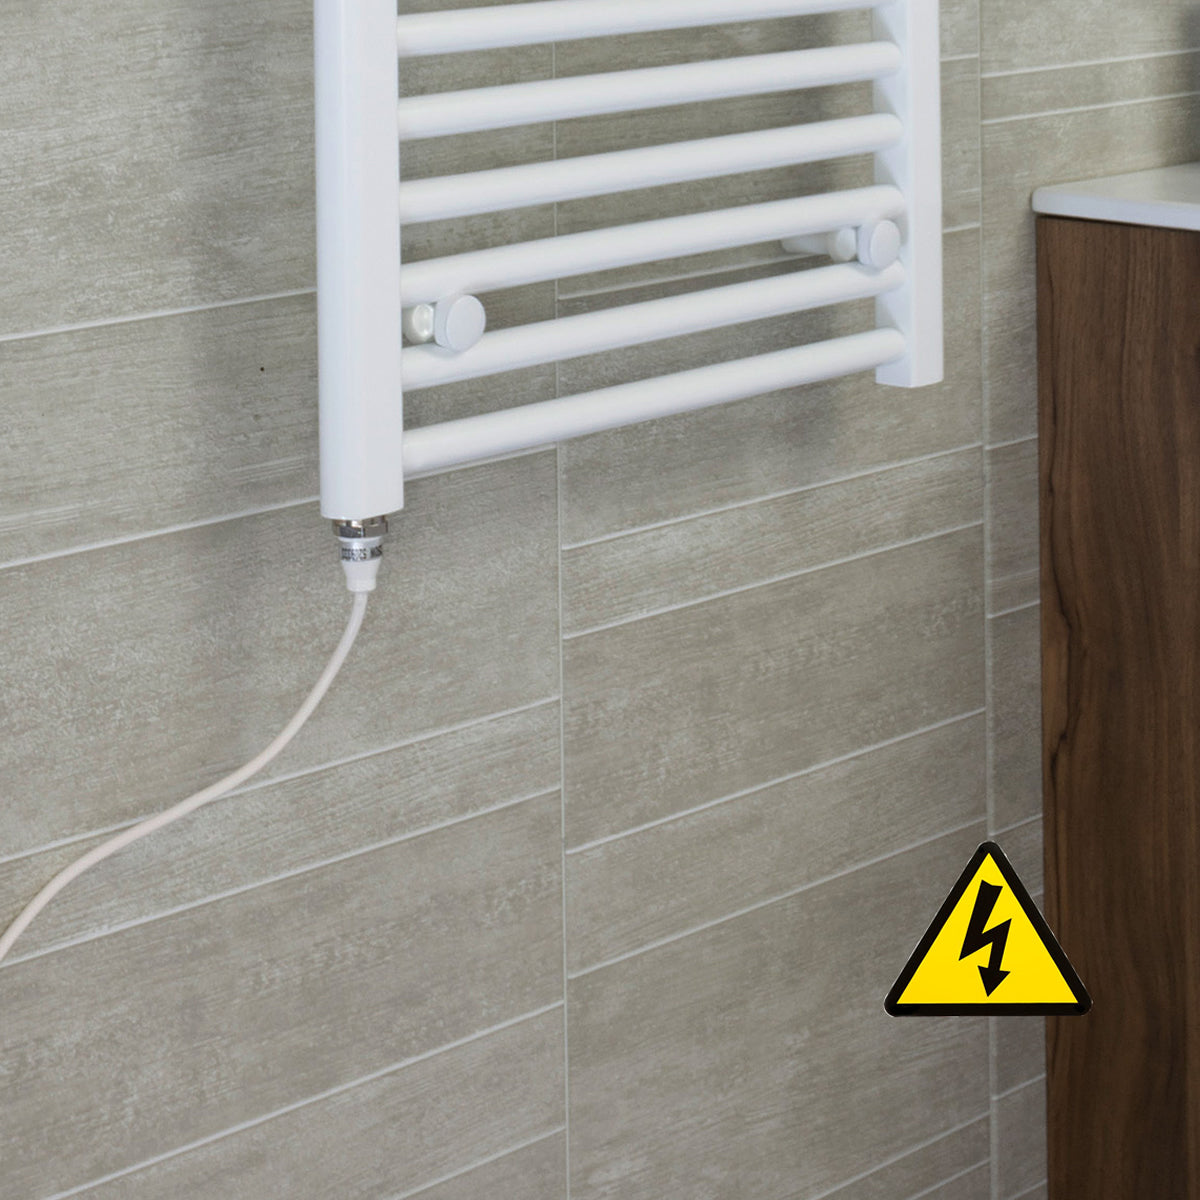 600mm Wide 1200mm High Pre-Filled White Electric Towel Rail Radiator With Single Heat Element